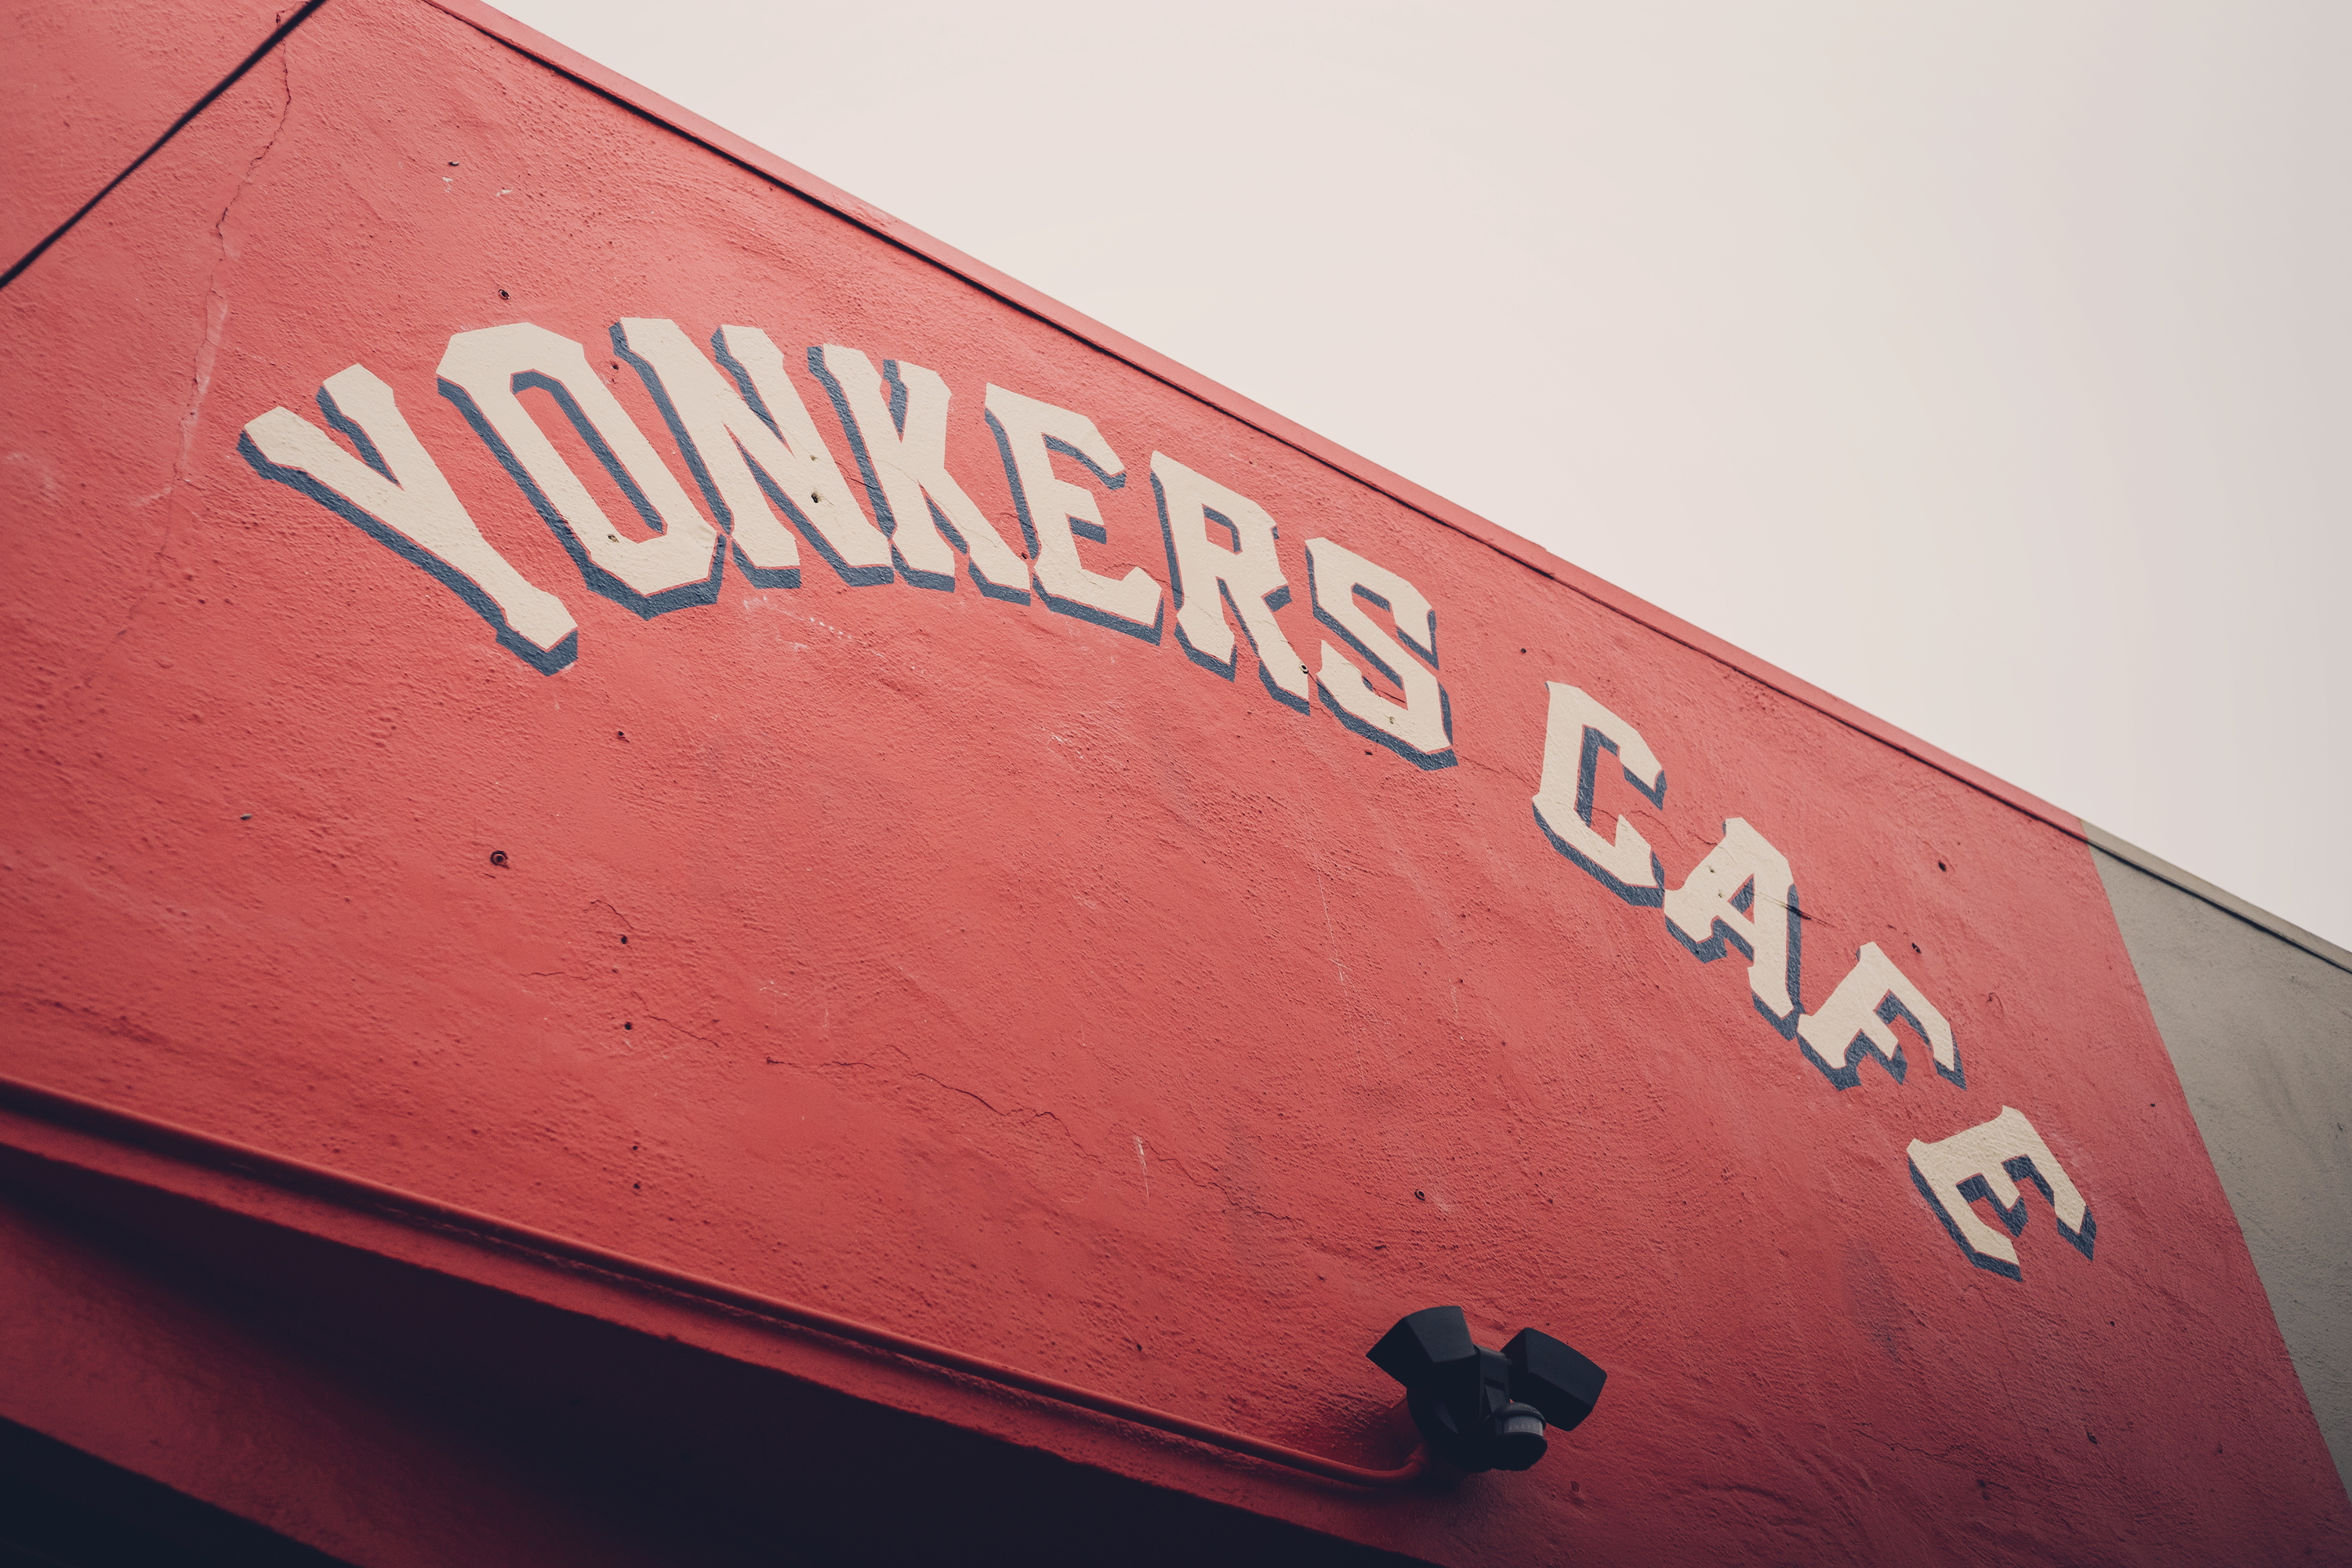 Yonkers Cafe